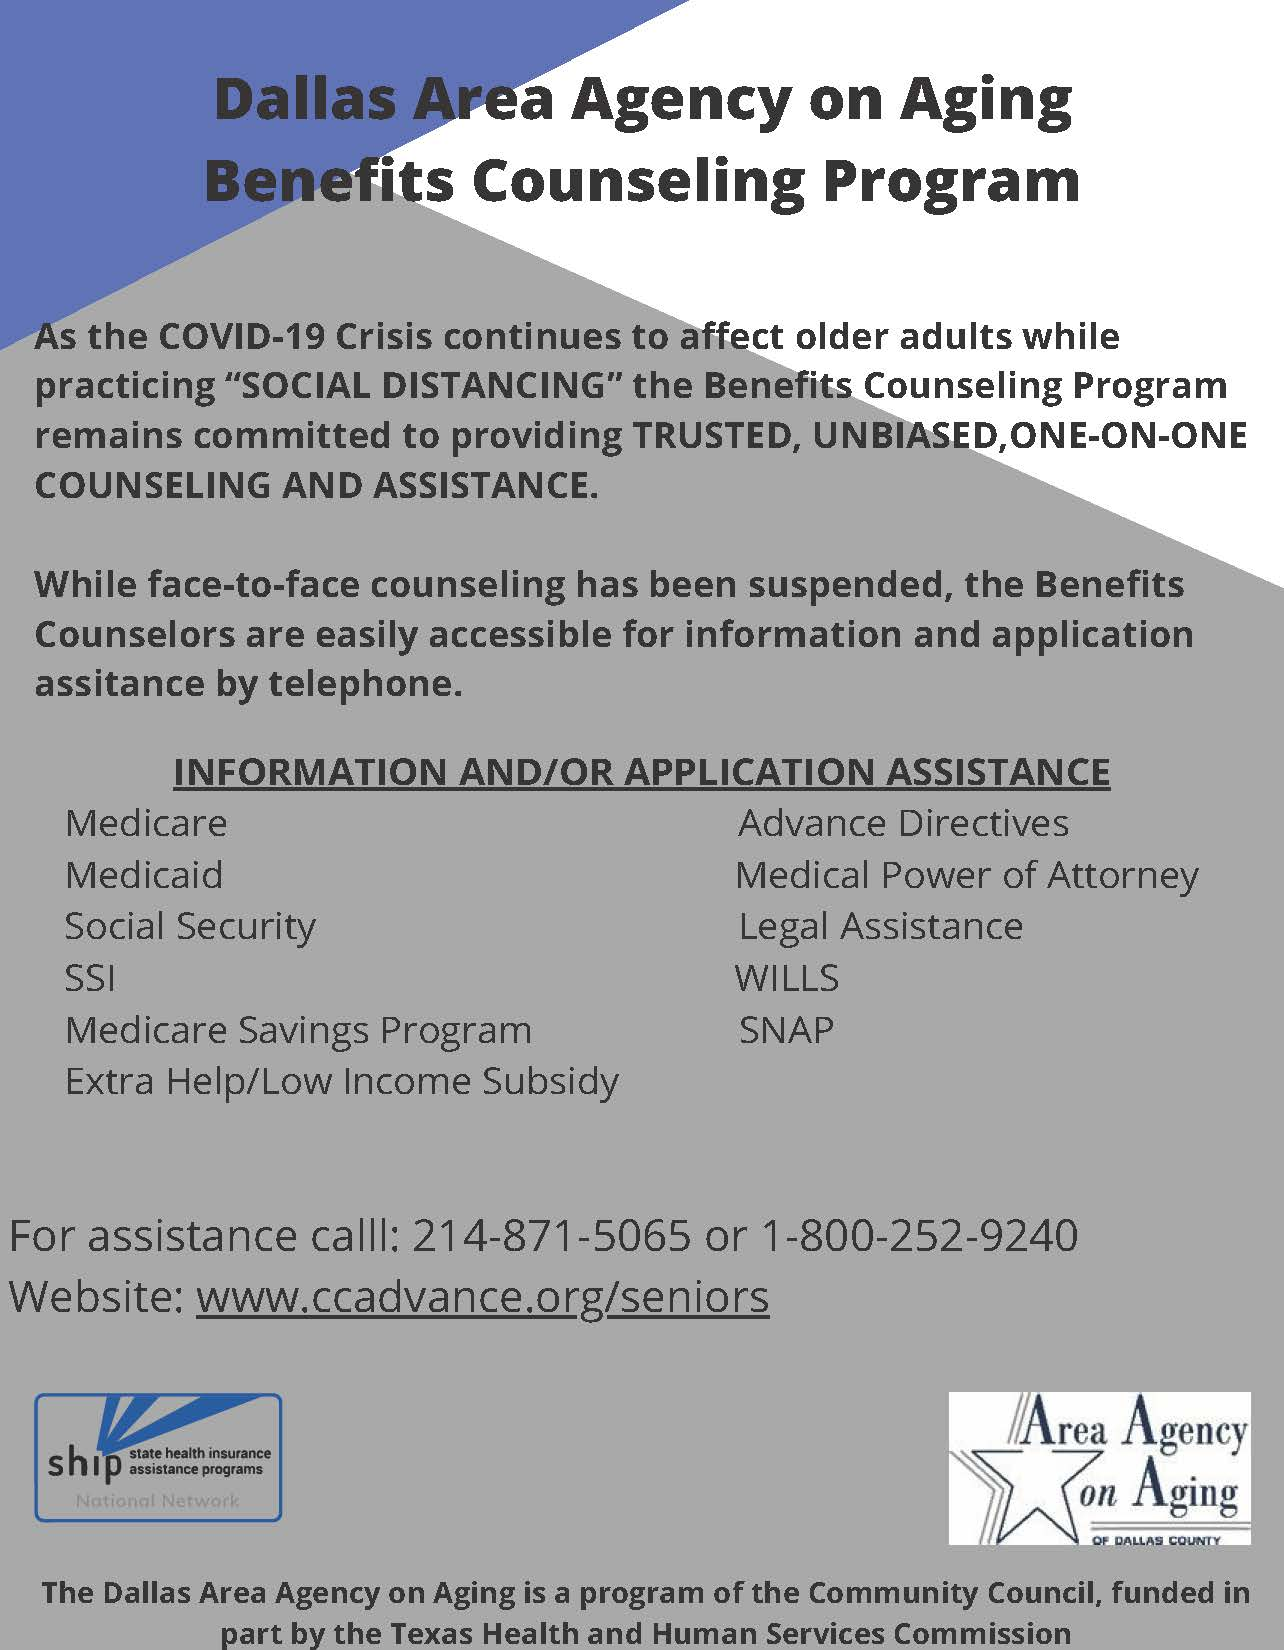 New Benefits Counseling Telephone Counseling Flyer 6-25-2020_Page_1